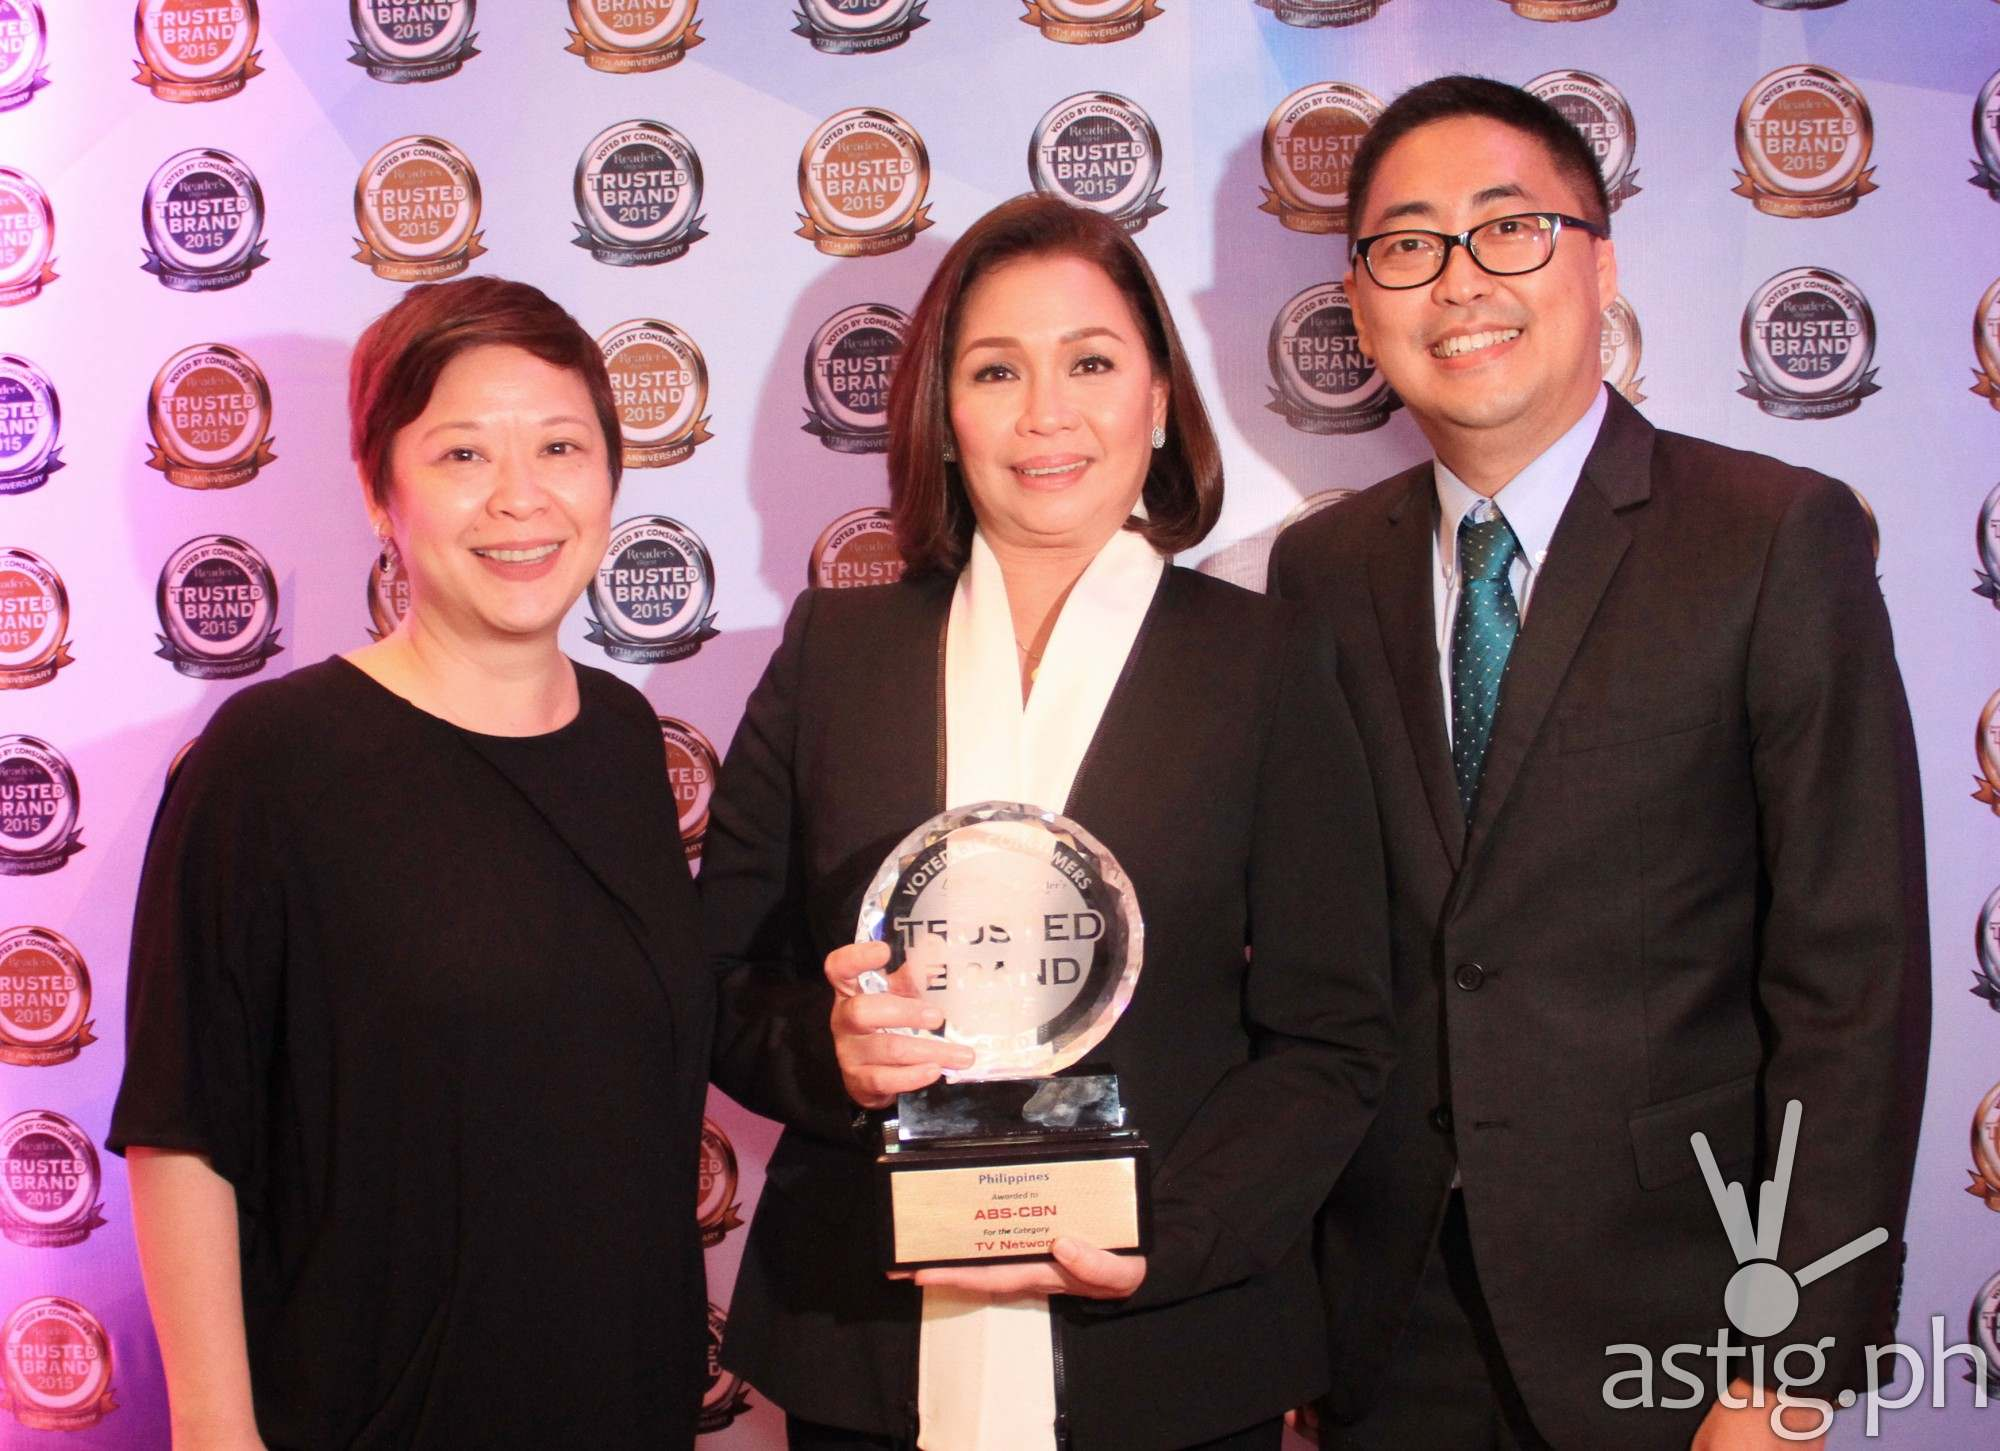 ABS-CBN Integrated Marketing head Cookie Bartolome, Reader's Digest's Sheron White, ABS-CBN Free TV